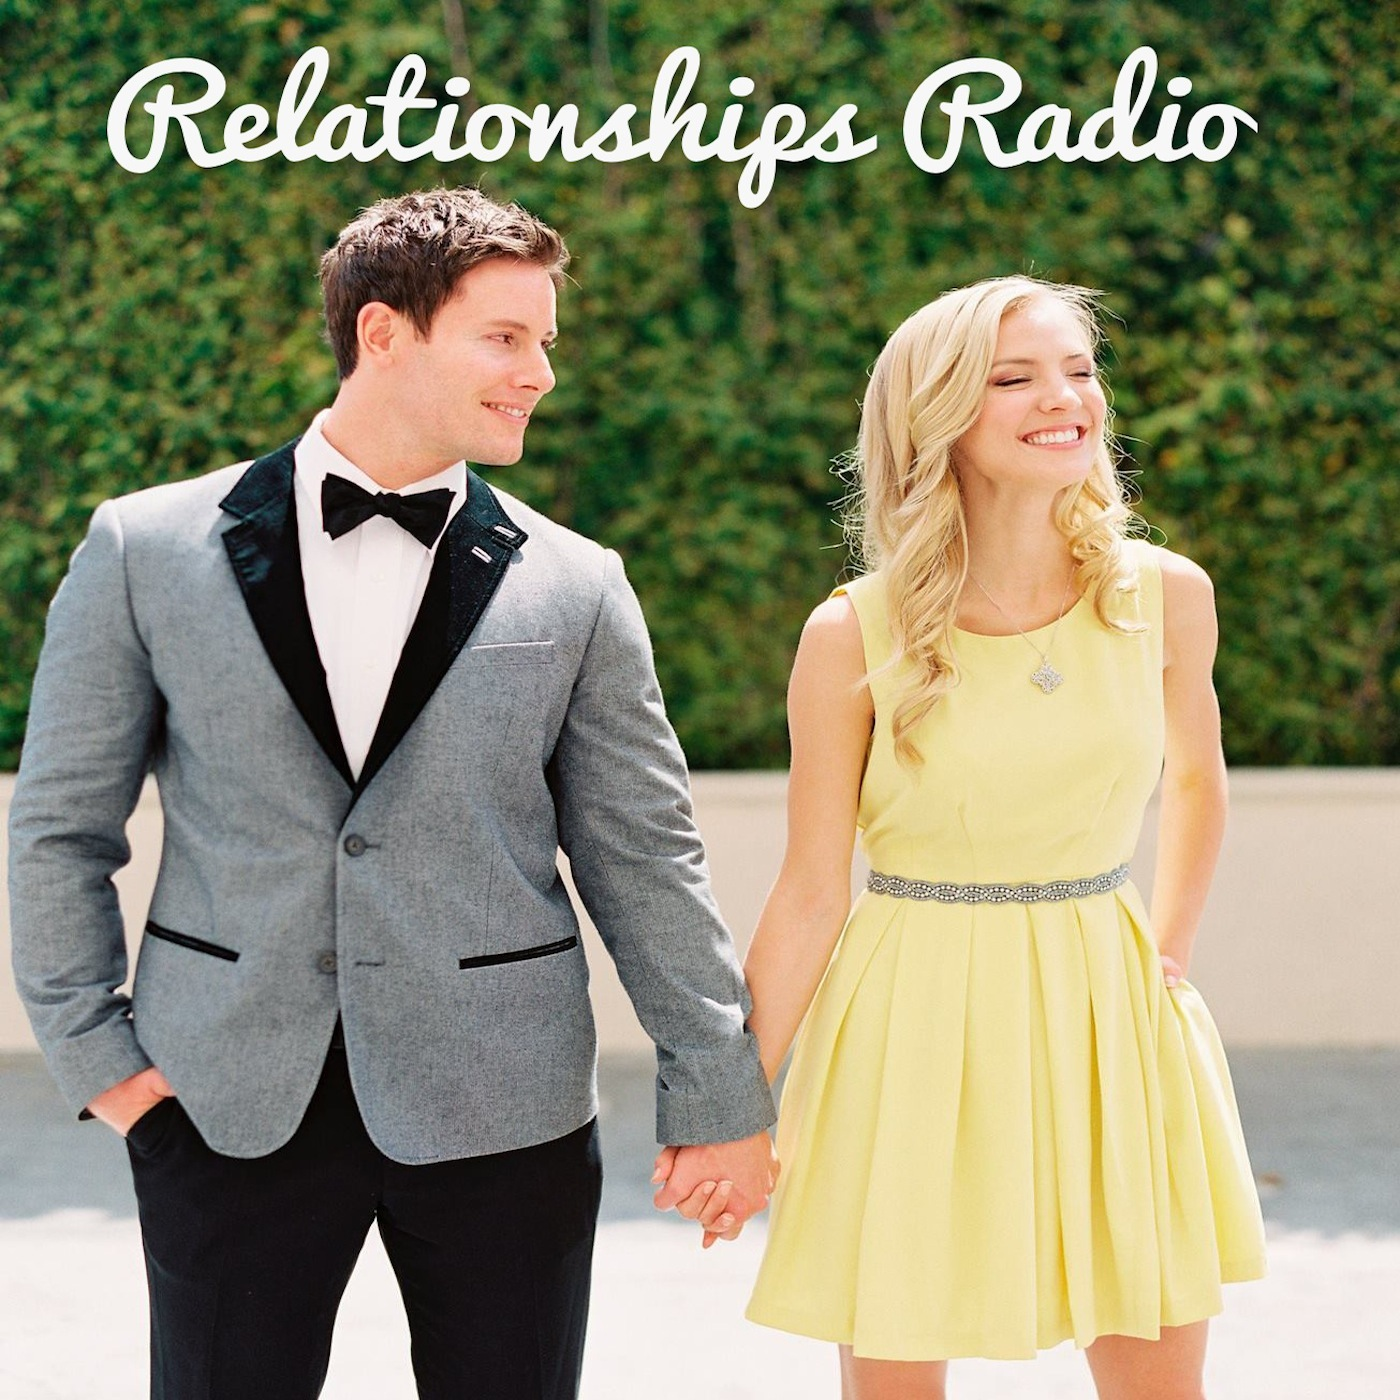 Relationships Radio